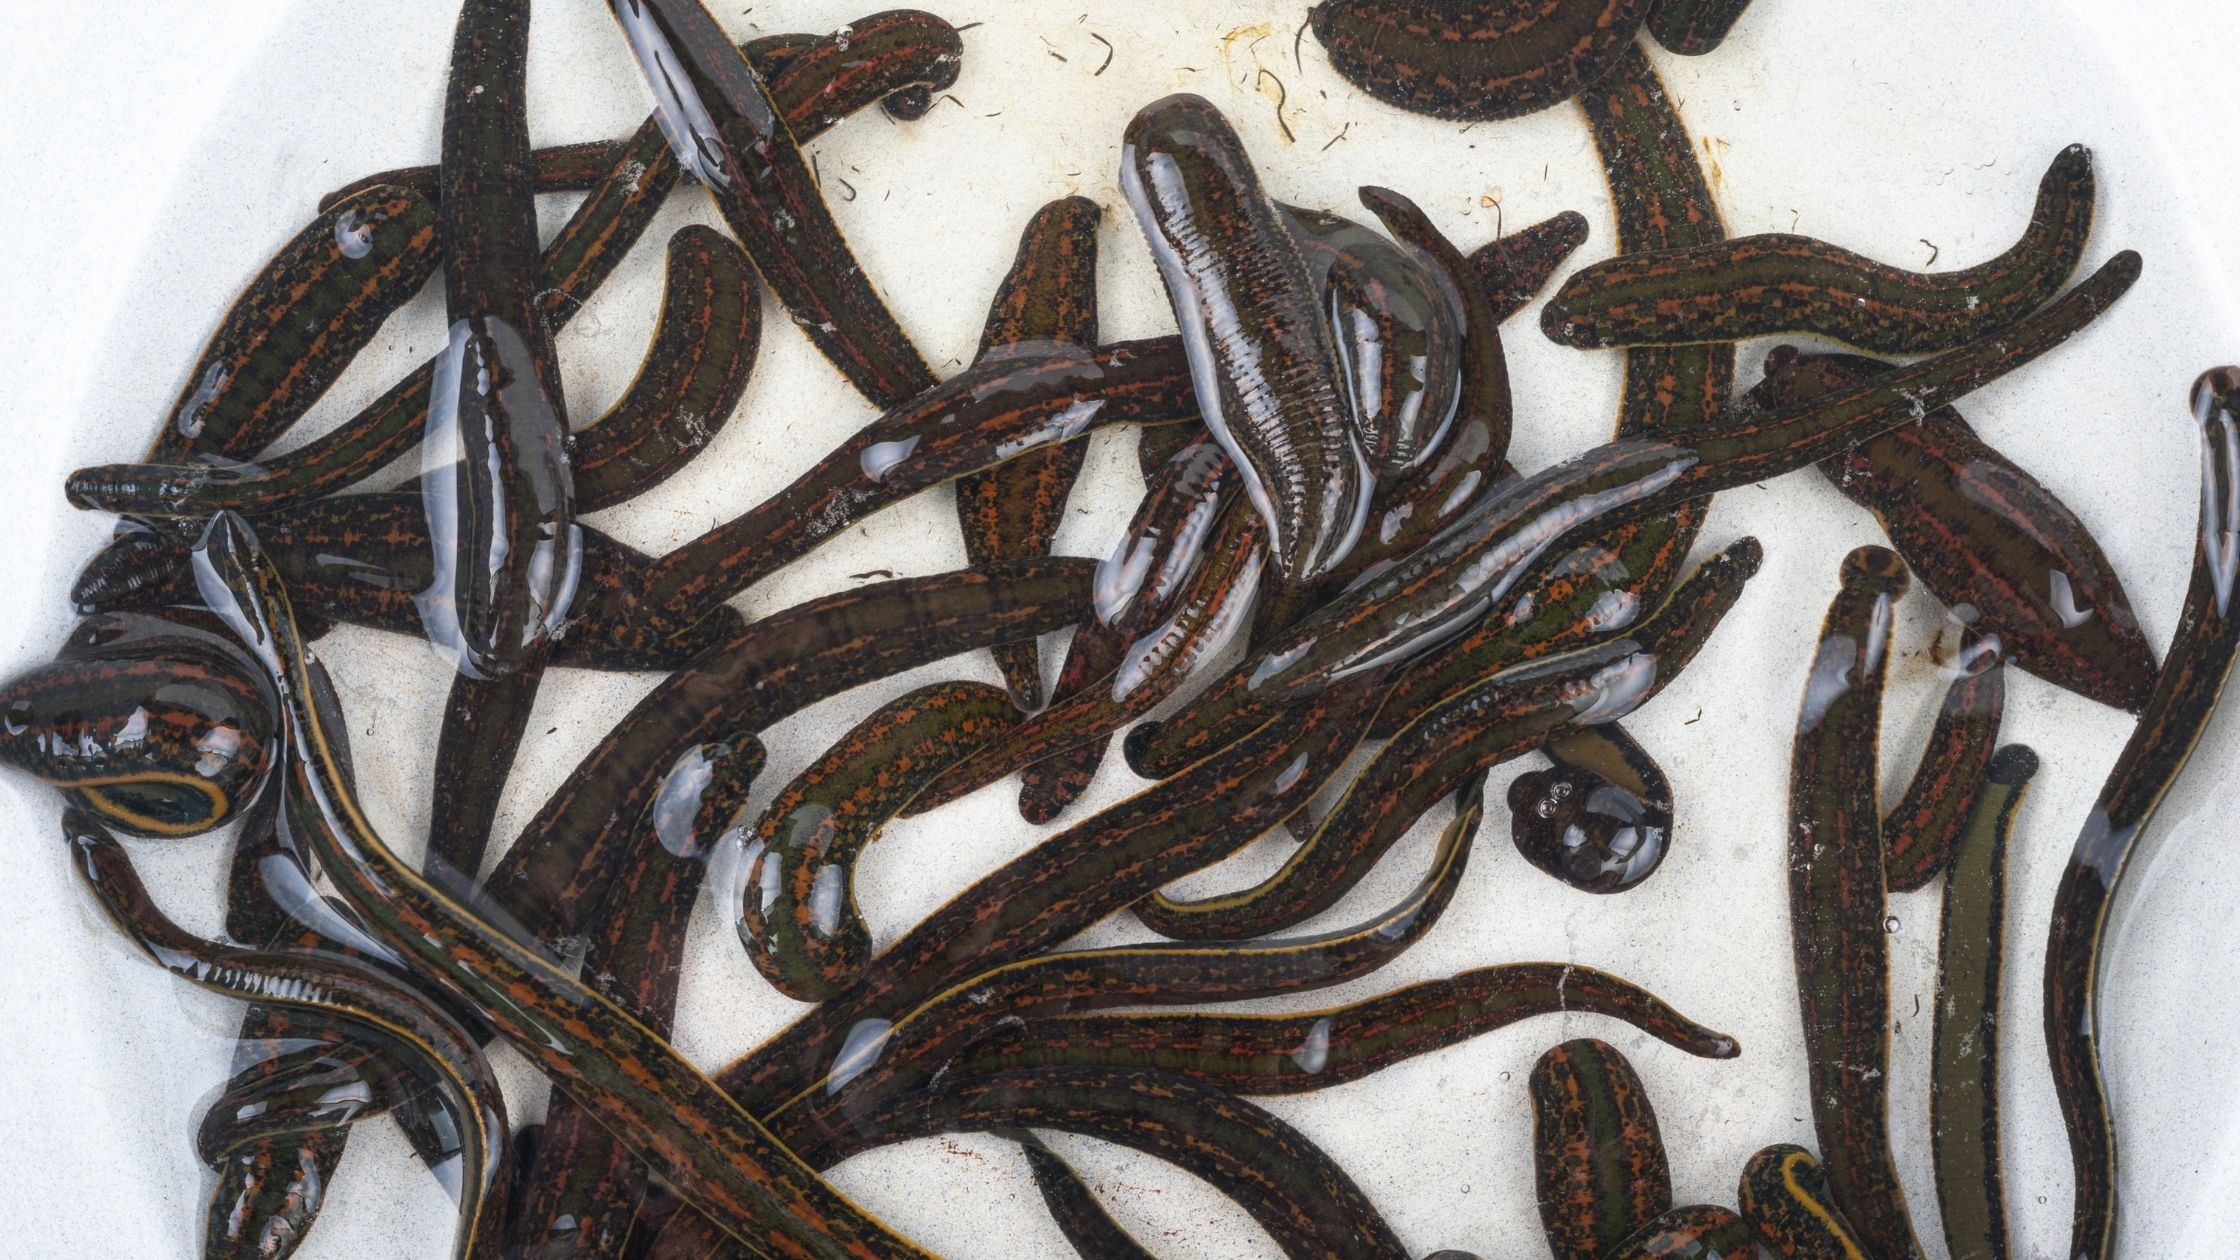 Types of Fishing Worms: Leeches